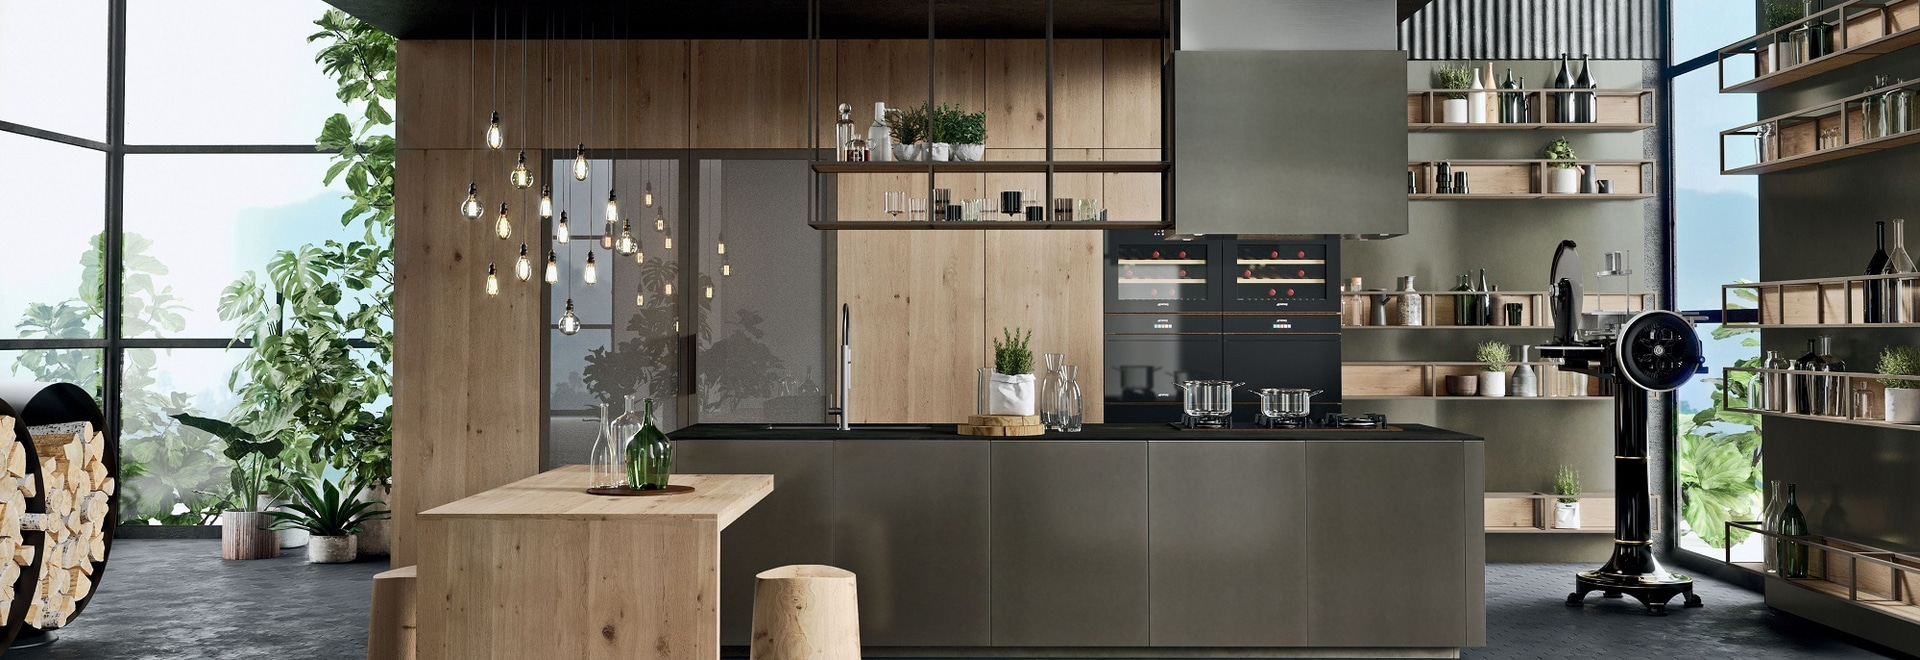 INDUSTRIAL STYLE IN THE KITCHEN: 5 TIPS TO GET IT RIGHT